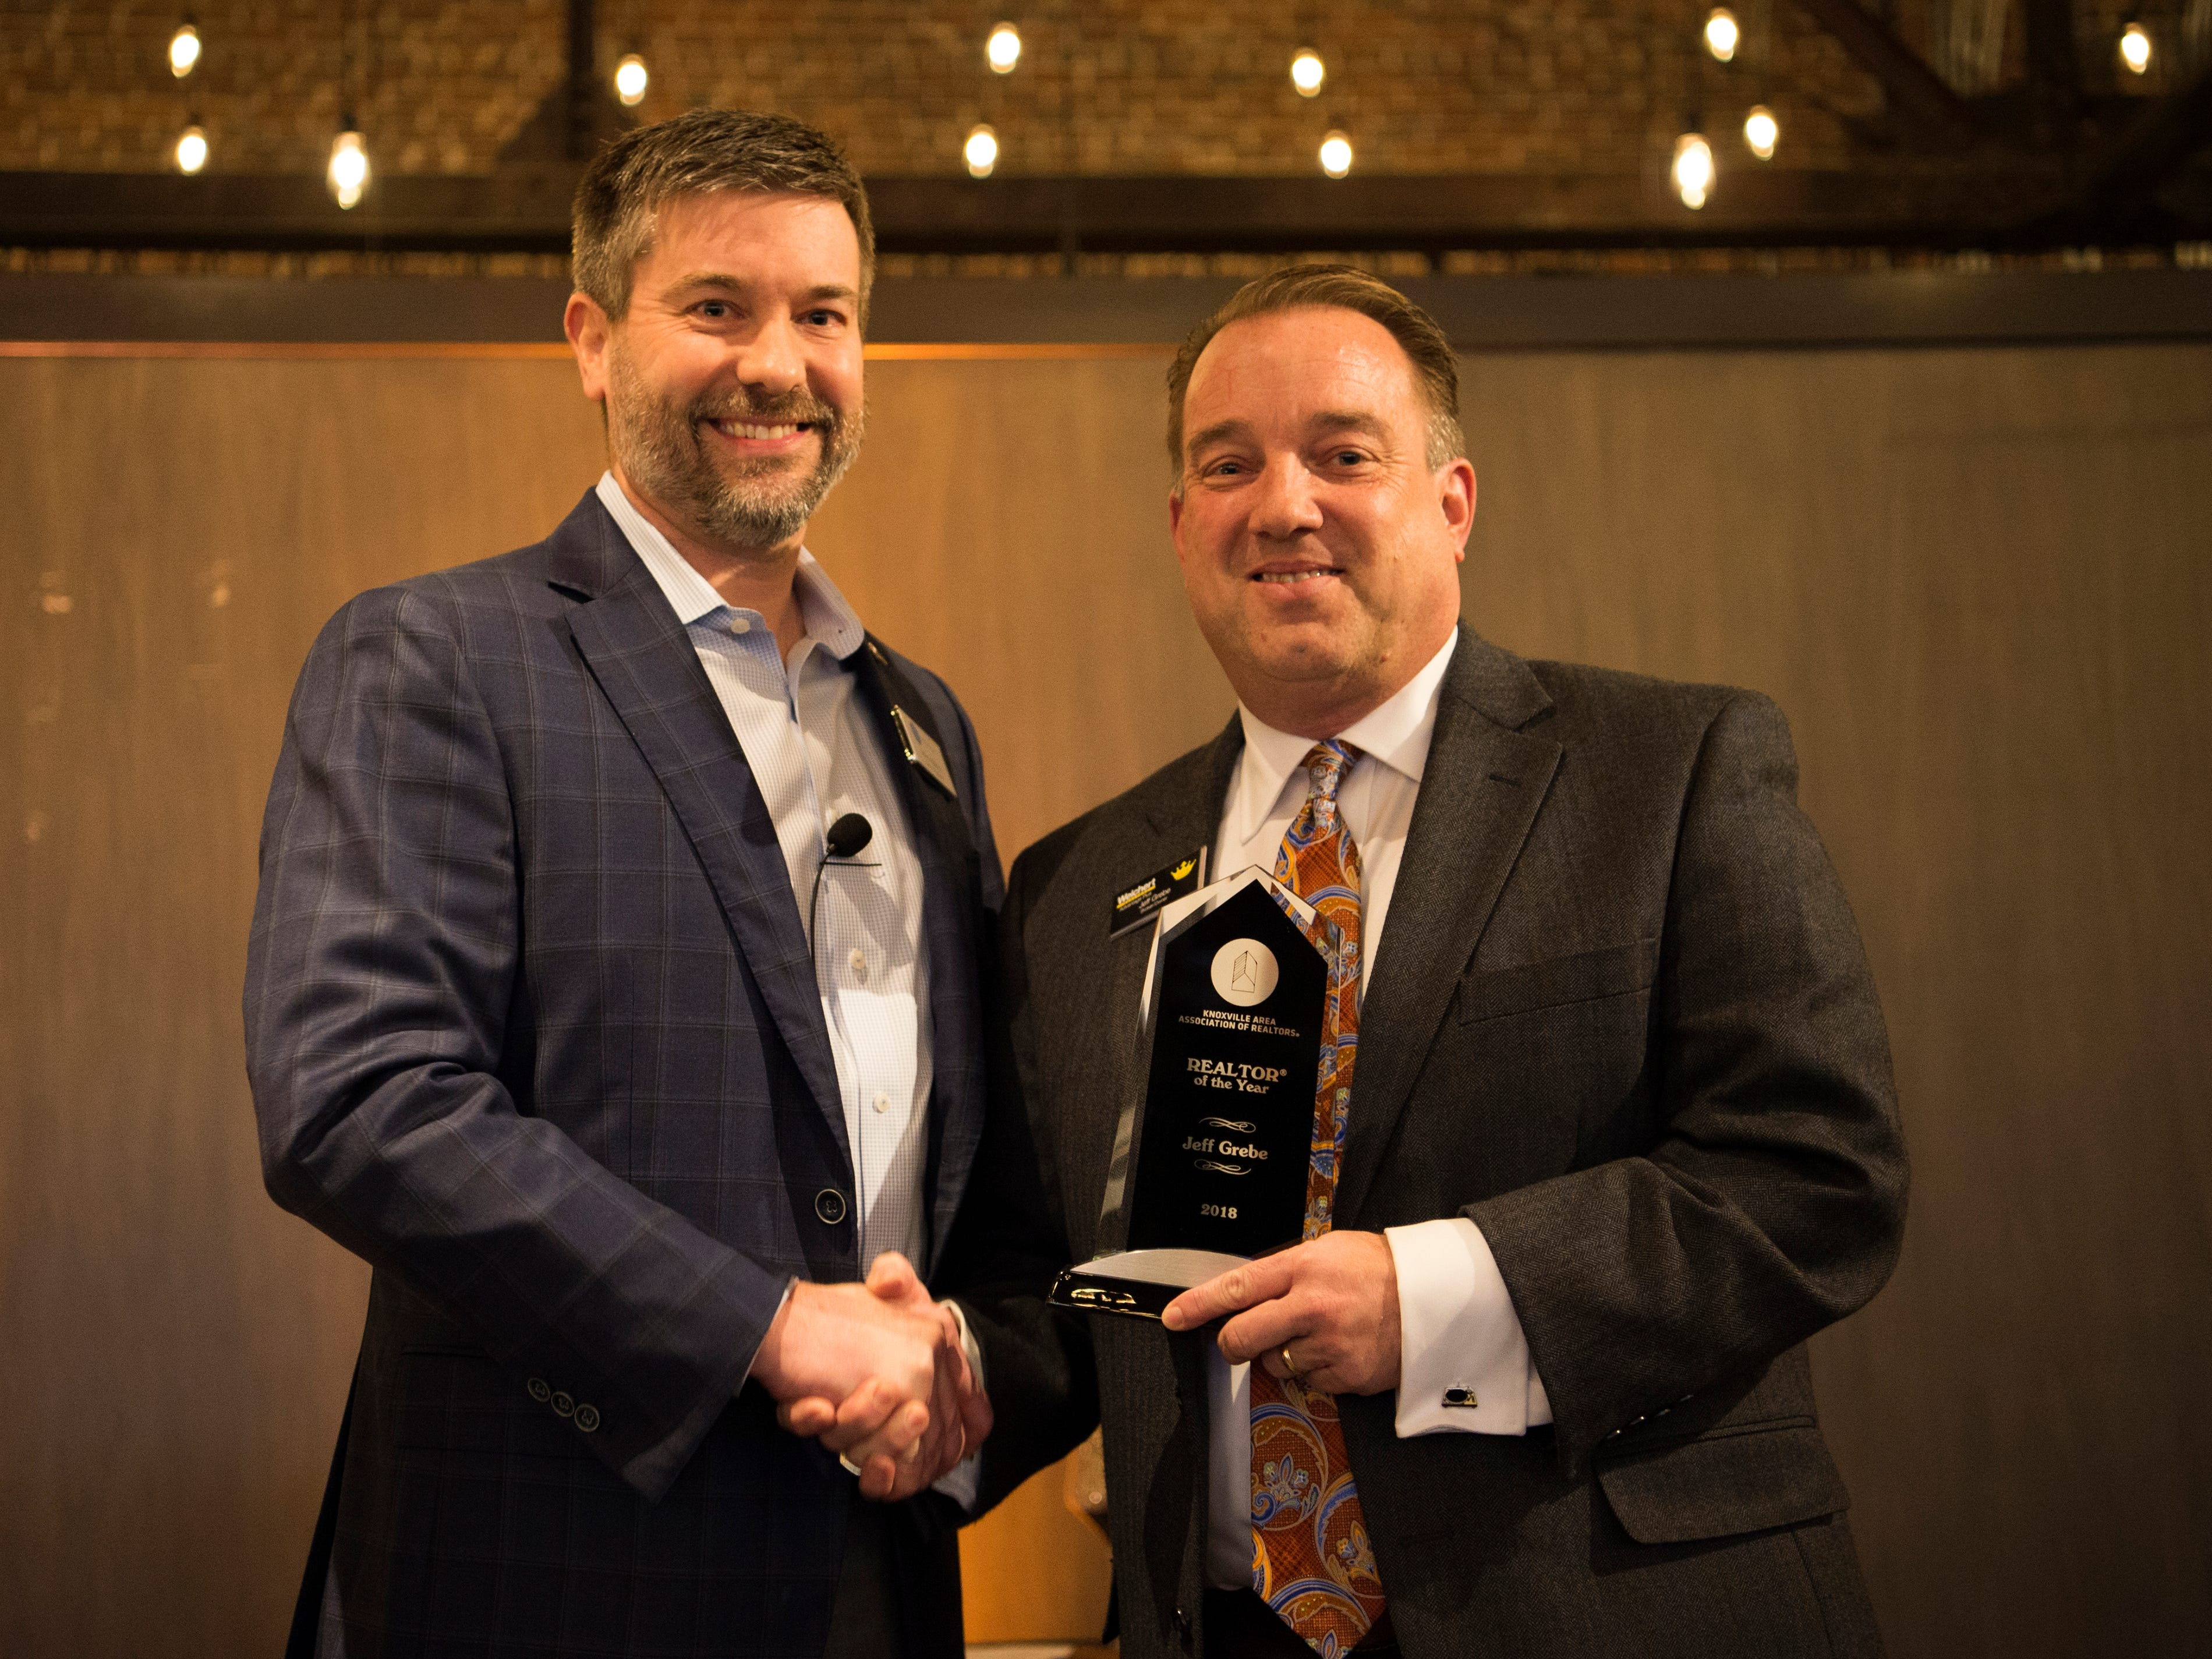 Jeff Grebe, right, is awarded Realtor of the Year at the Commercial and Residential Real Estate Awards held at The Press Room in Knoxville on Tuesday, February 12, 2019.